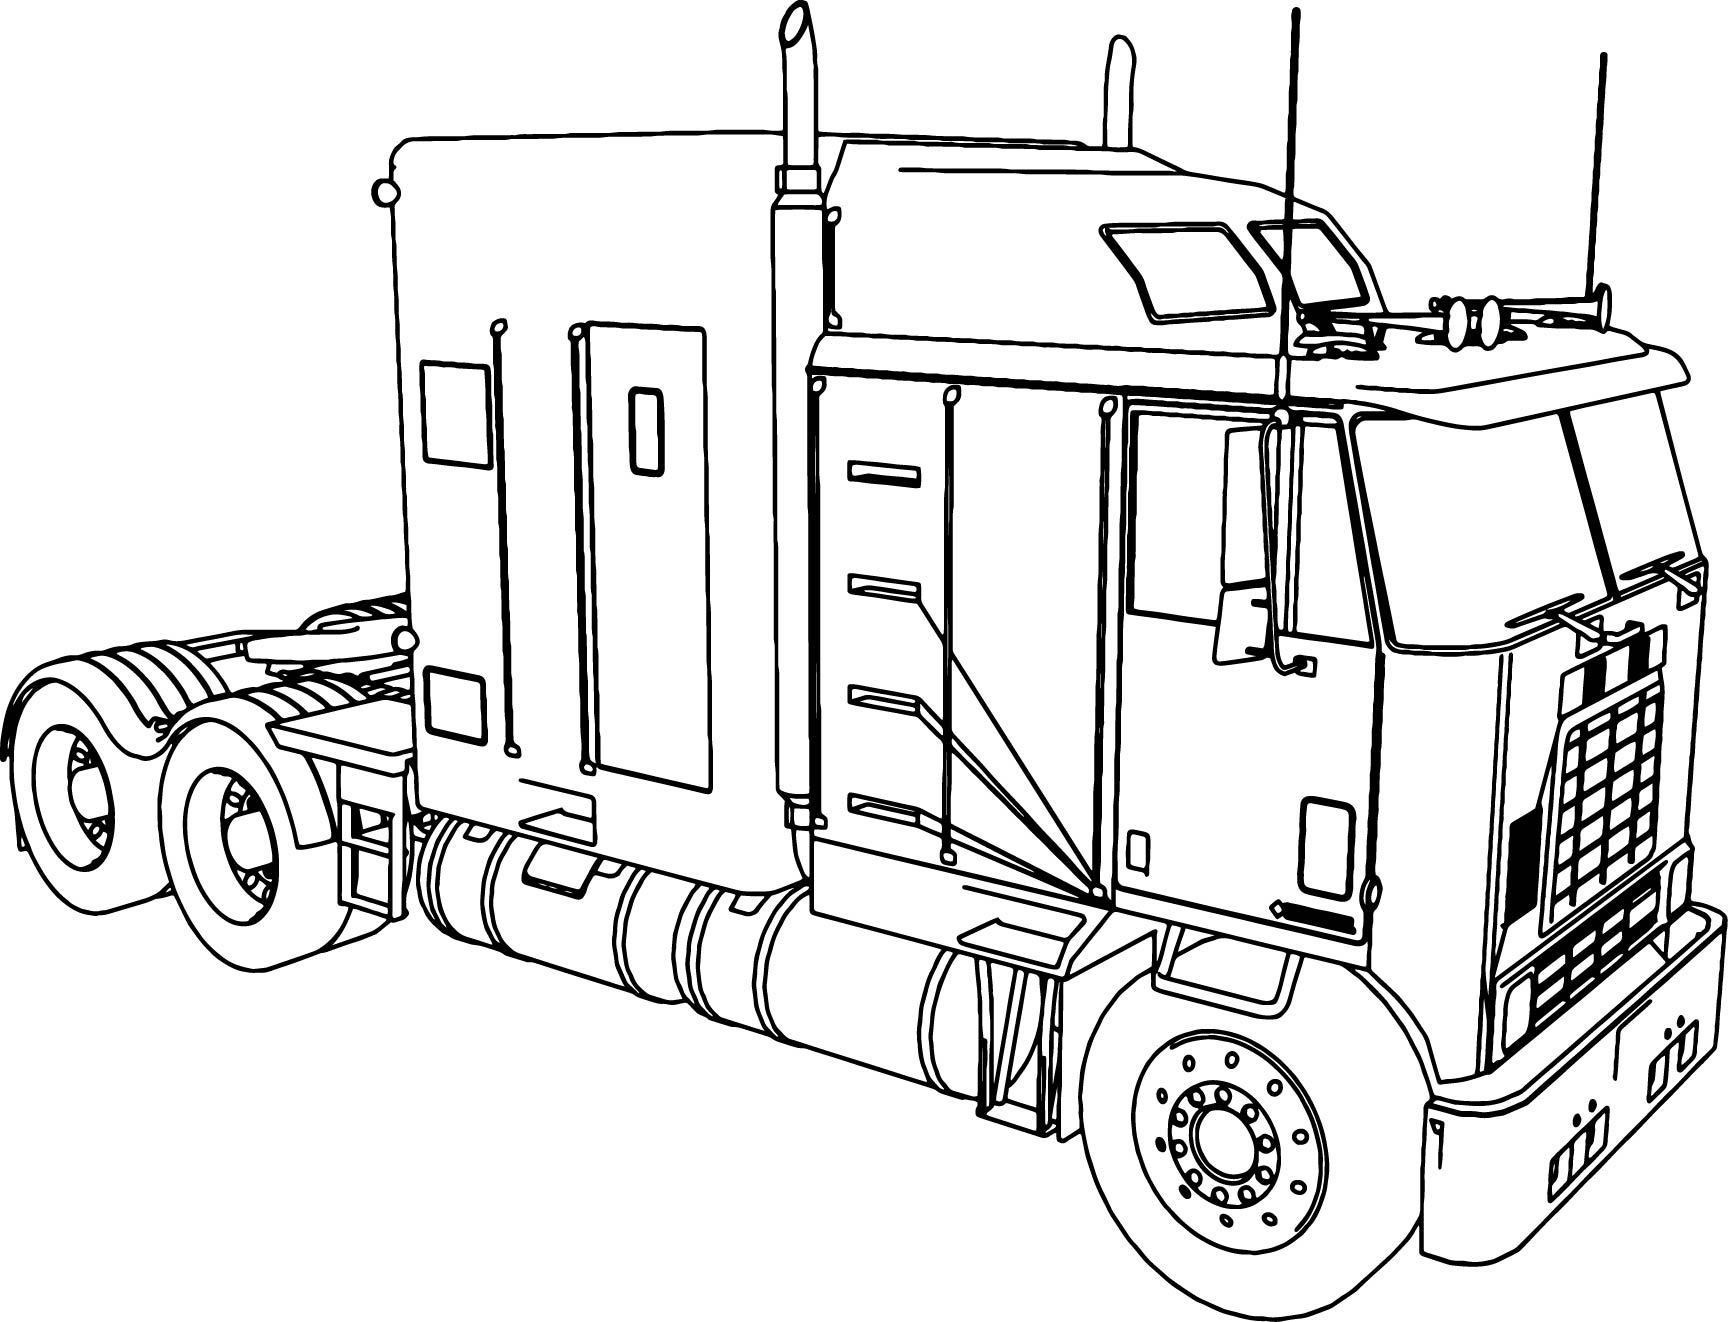 truck with trailer coloring pages 40 free printable truck coloring pages download with coloring truck pages trailer